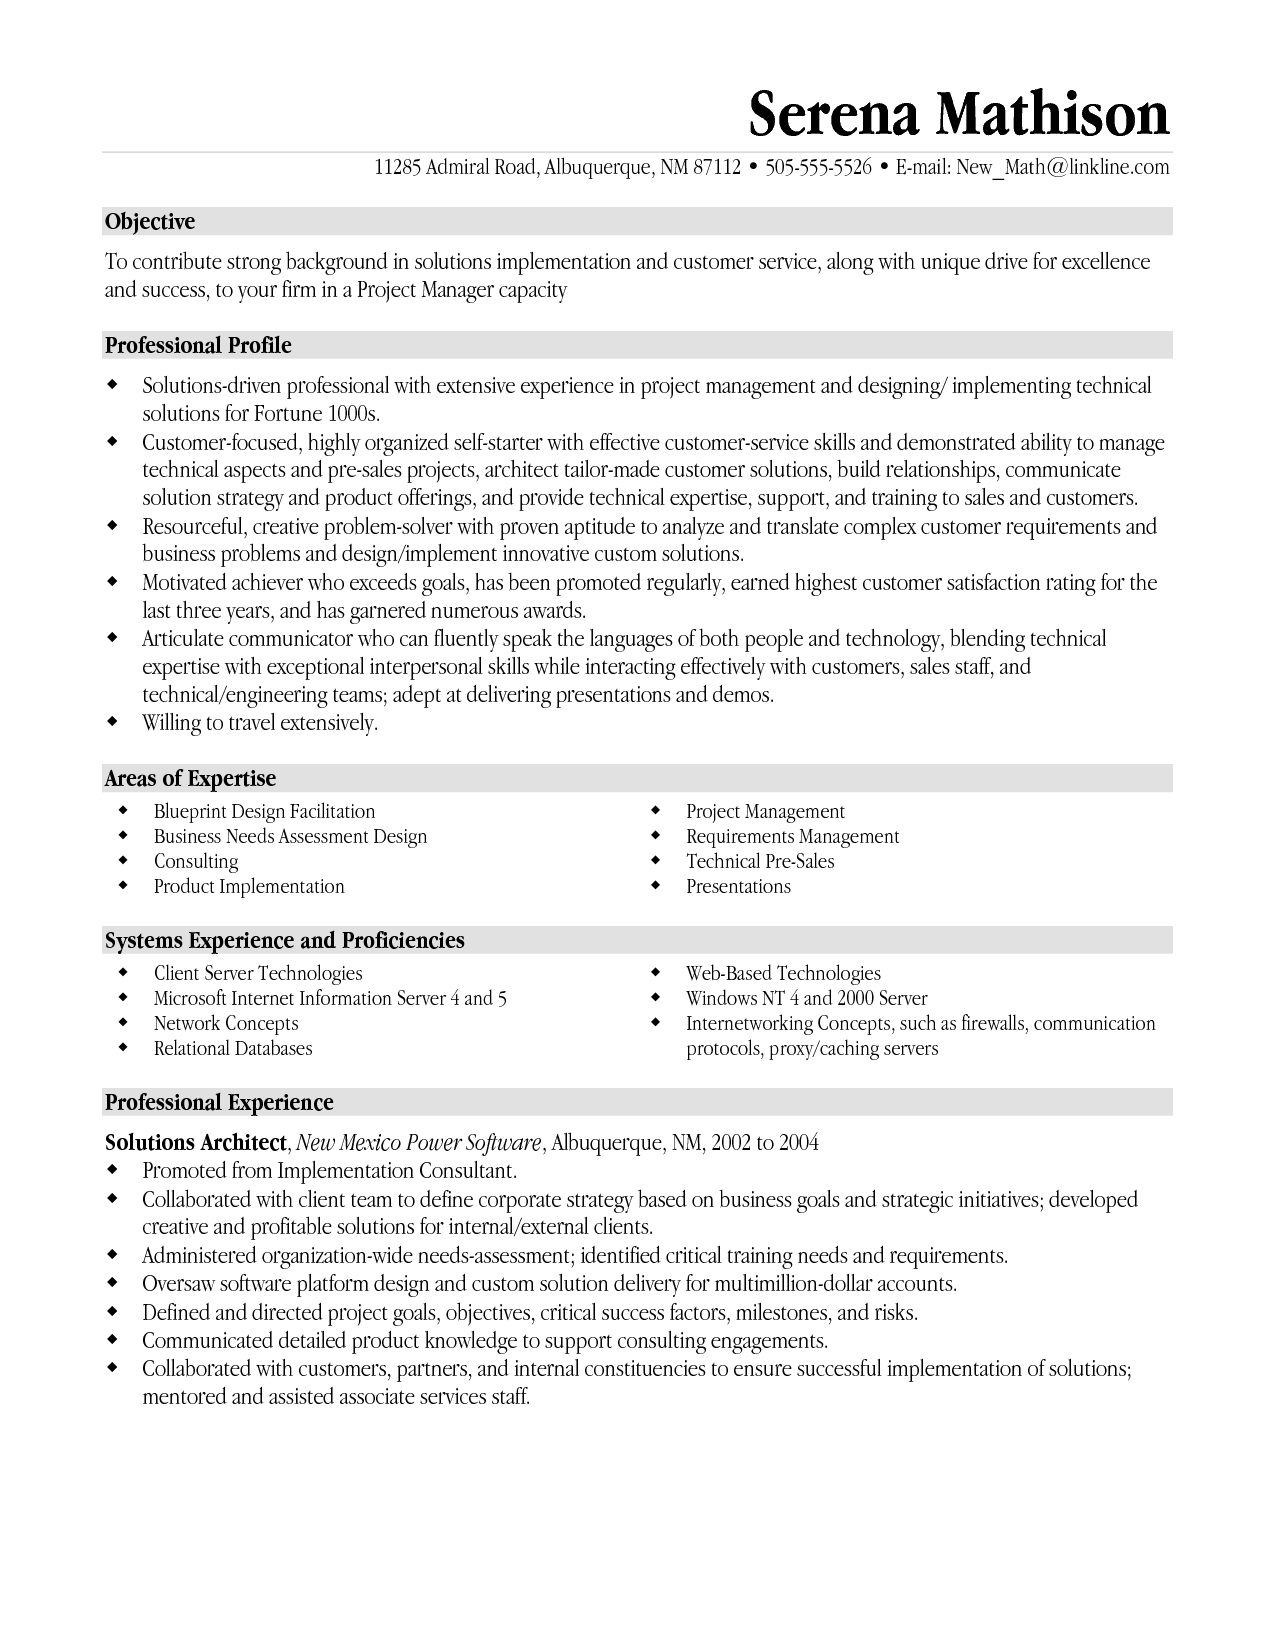 Resume Templates Project Manager  Project Management Resume  A